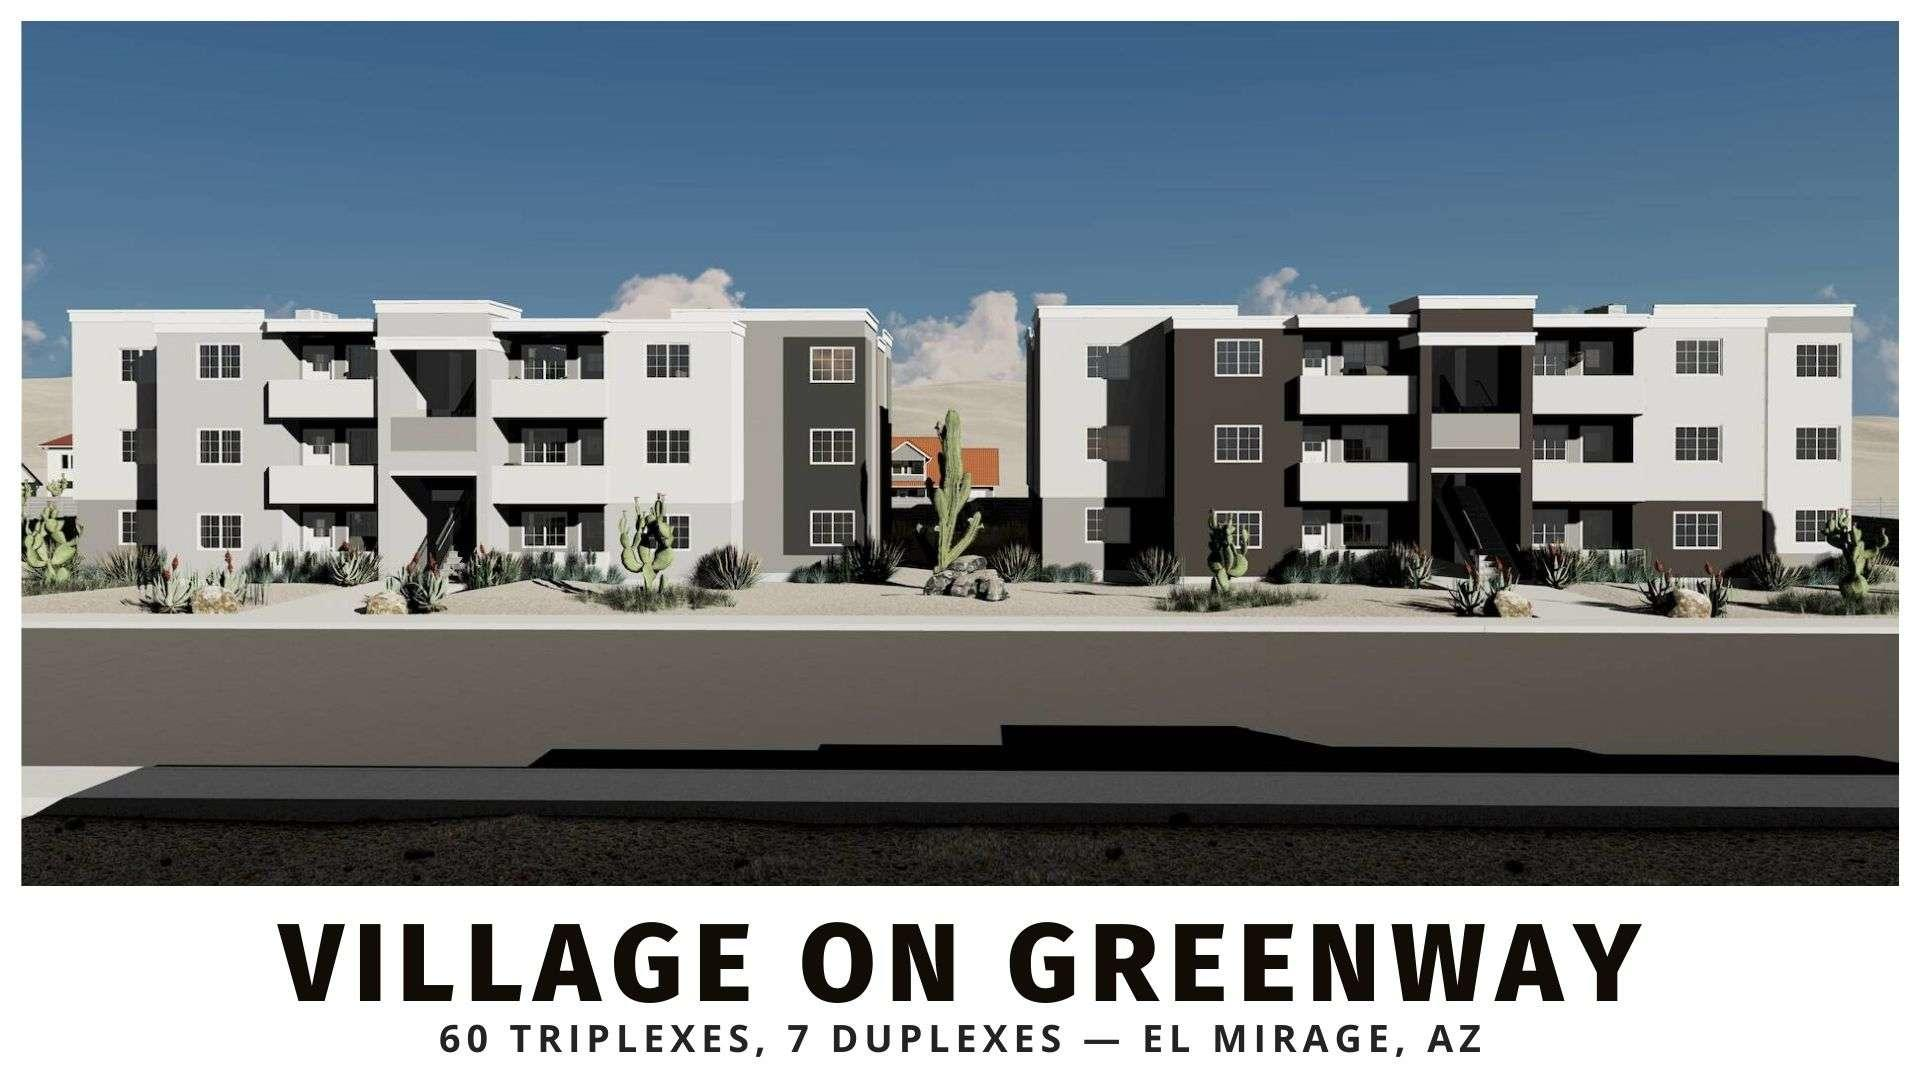 The Village on Greenway investment properties in Maricopa County